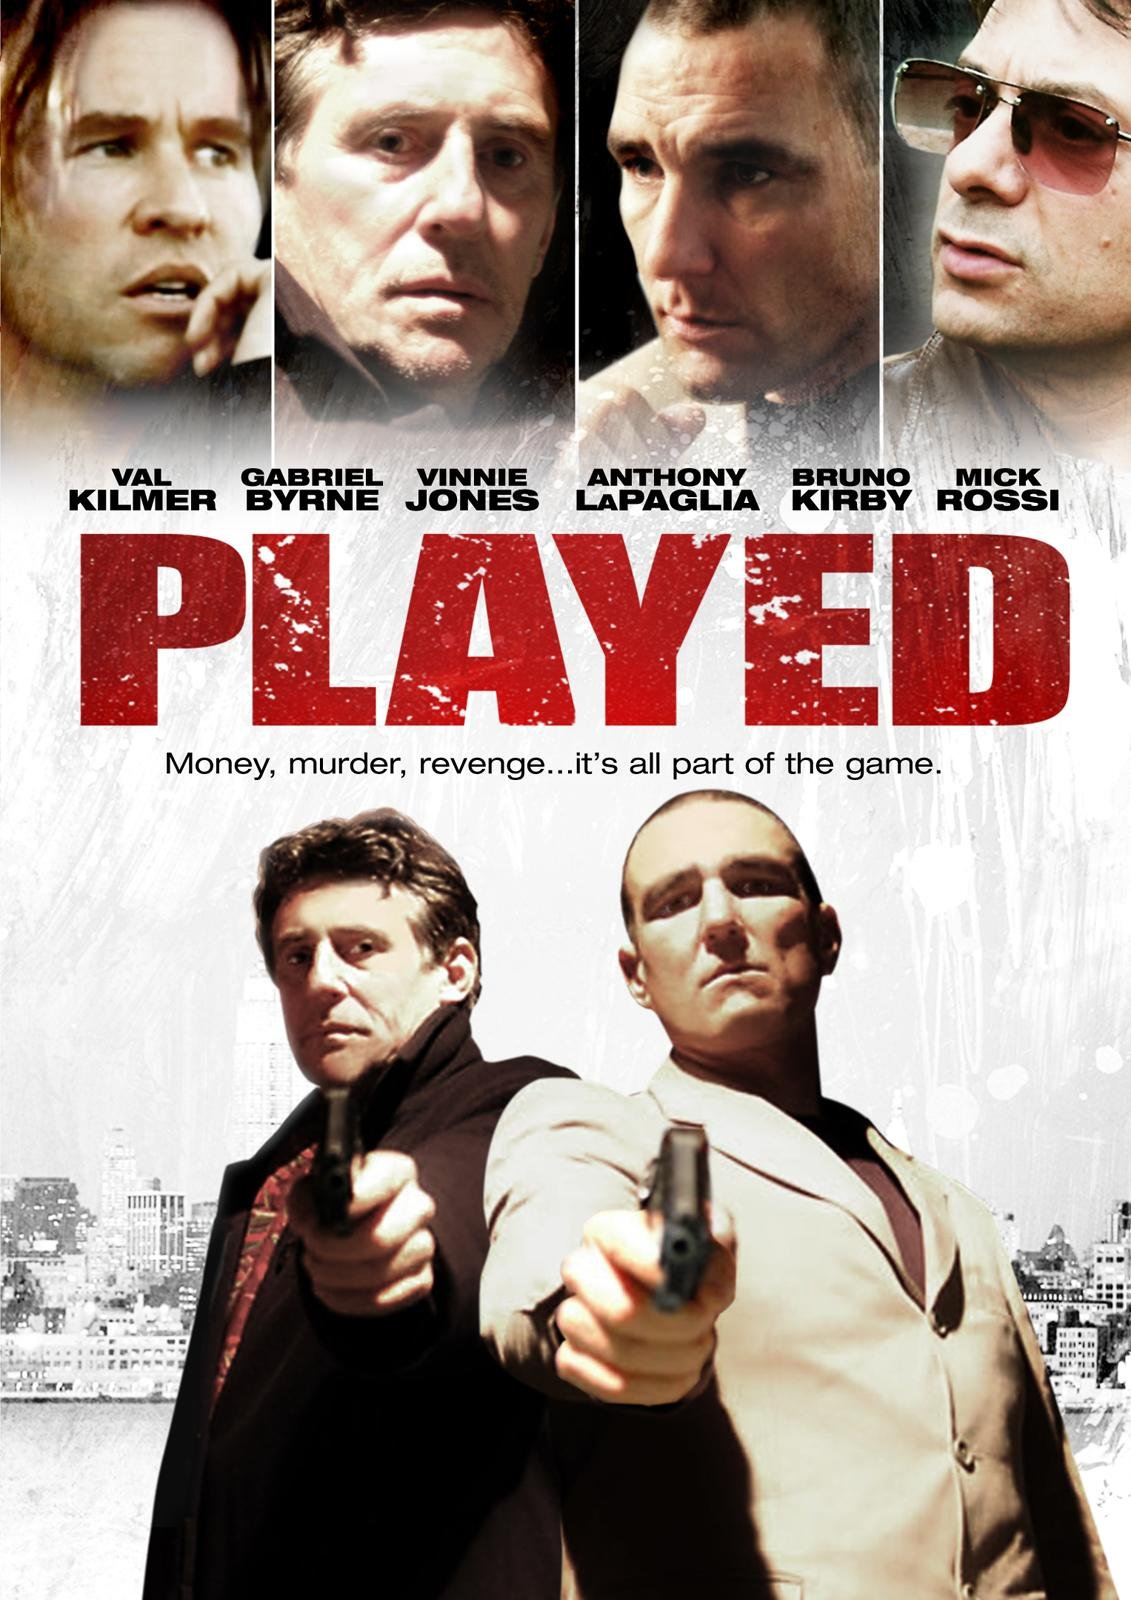 Val Kilmer, Gabriel Byrne, Anthony LaPaglia, Vinnie Jones, and Mick Rossi in Played (2006)